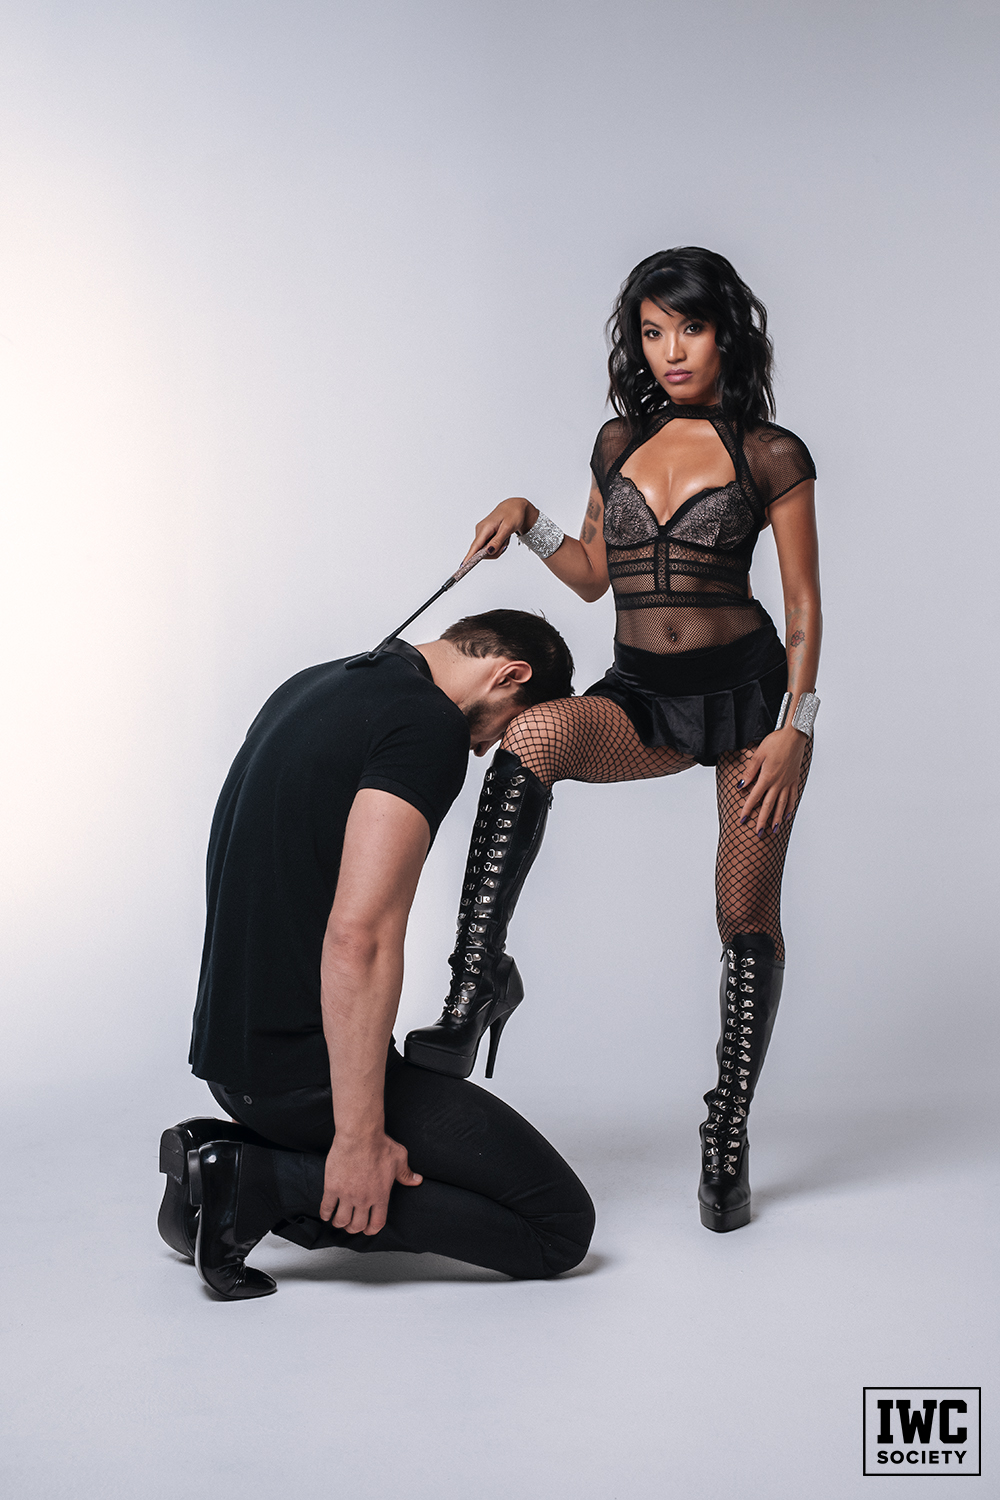 Asian goddess Asia Perez posing in black lingerie with black boots